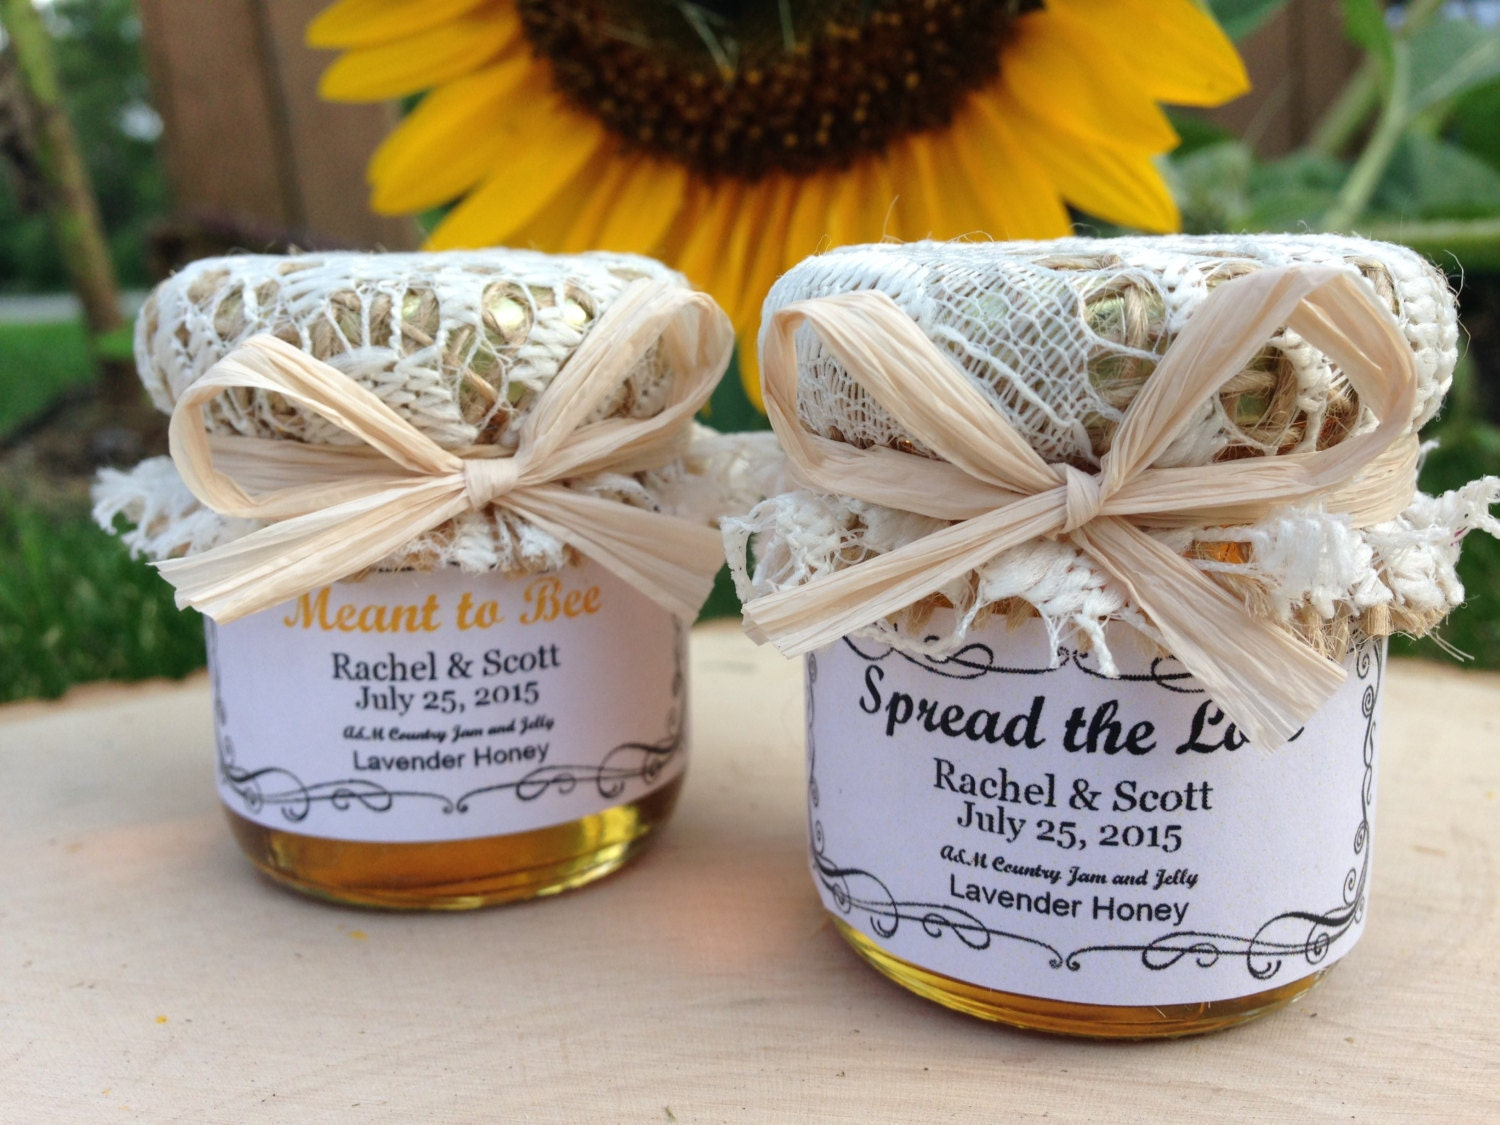 Meant to bee honey wedding favors 15oz jar by for Honey bee wedding favors